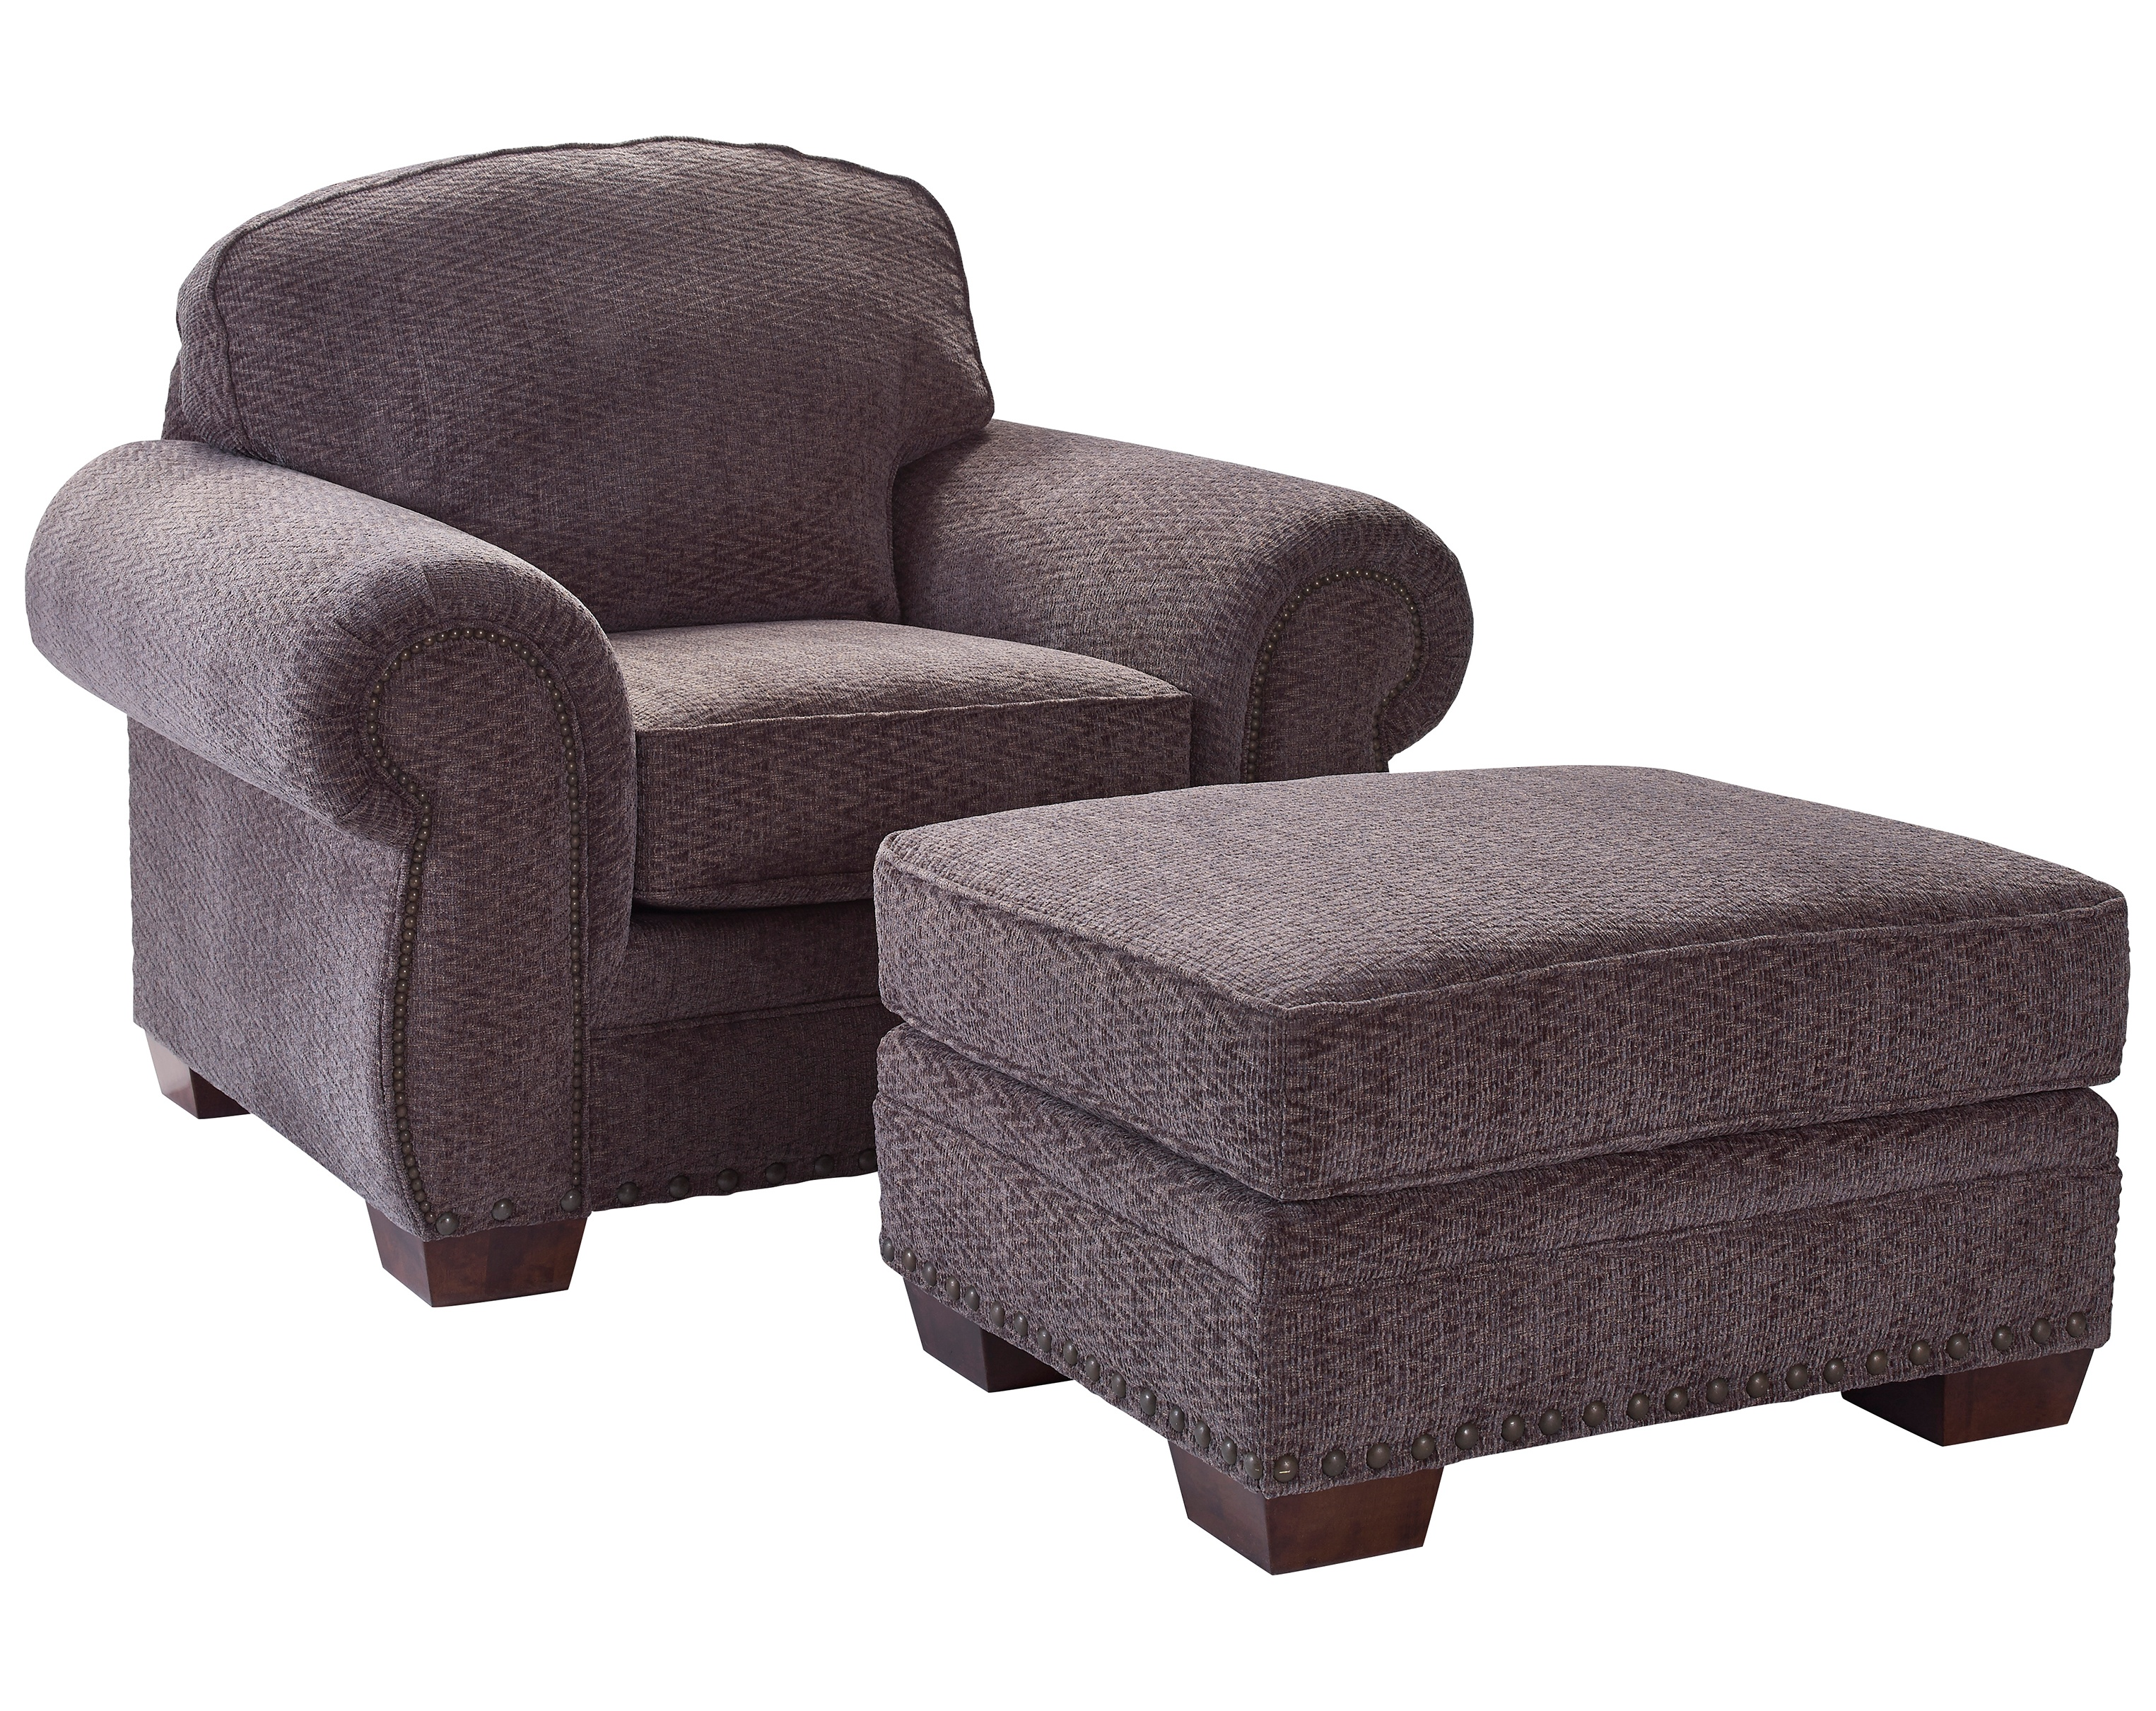 Pleasing Cambridge 5054 Sofa Collection Customize Sofas And Alphanode Cool Chair Designs And Ideas Alphanodeonline